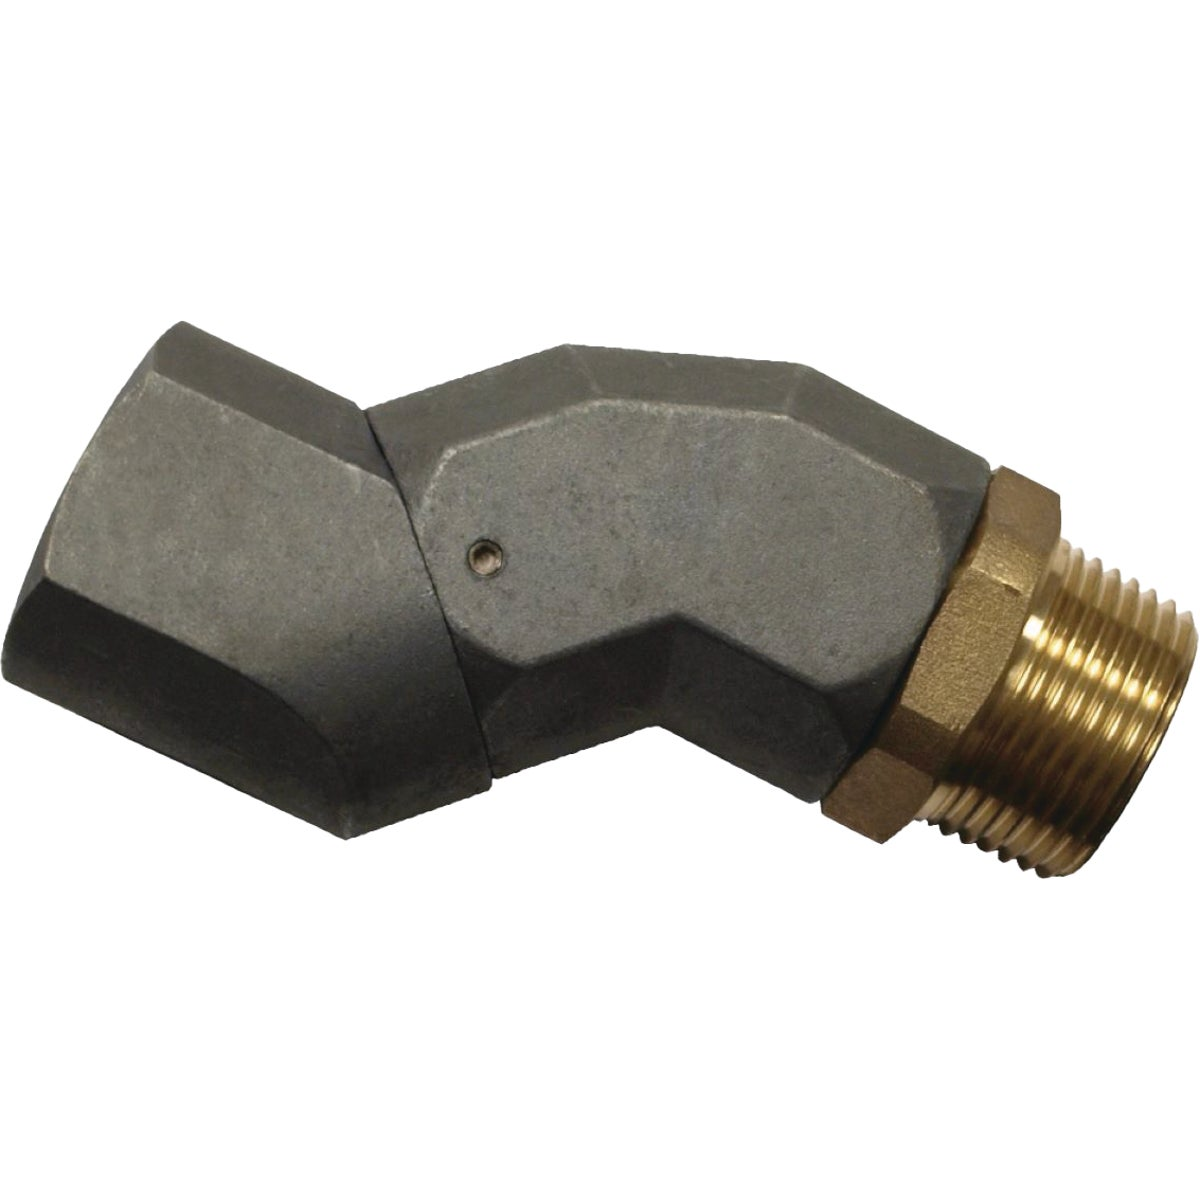 "3/4"" FUEL SWIVEL - 99000233 by Apache Hose Belting"